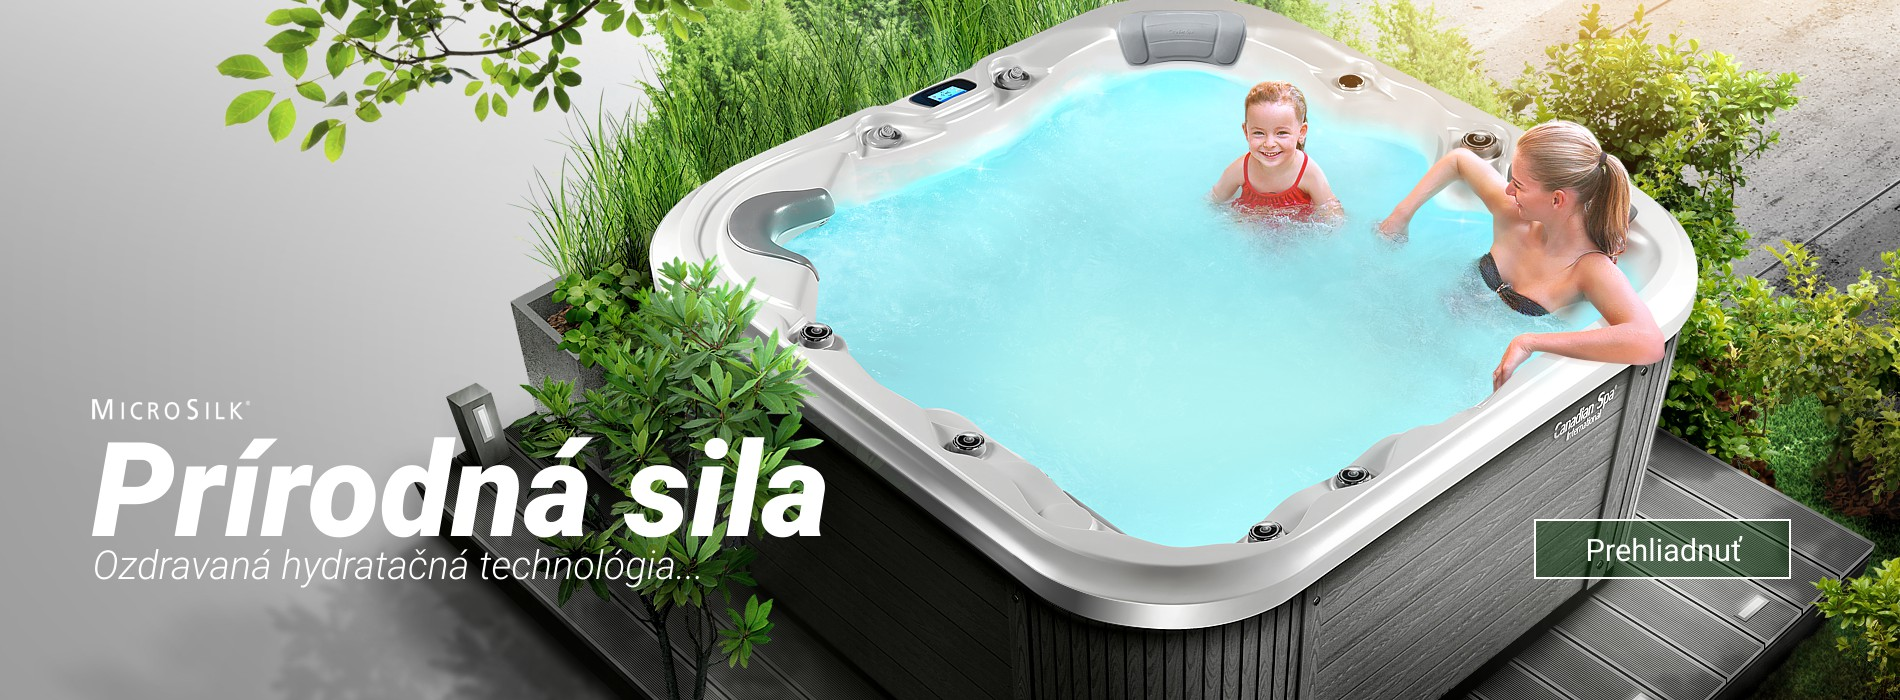 Microsilk prírodná sila - Hydrotherapy by Canadian Spa International®